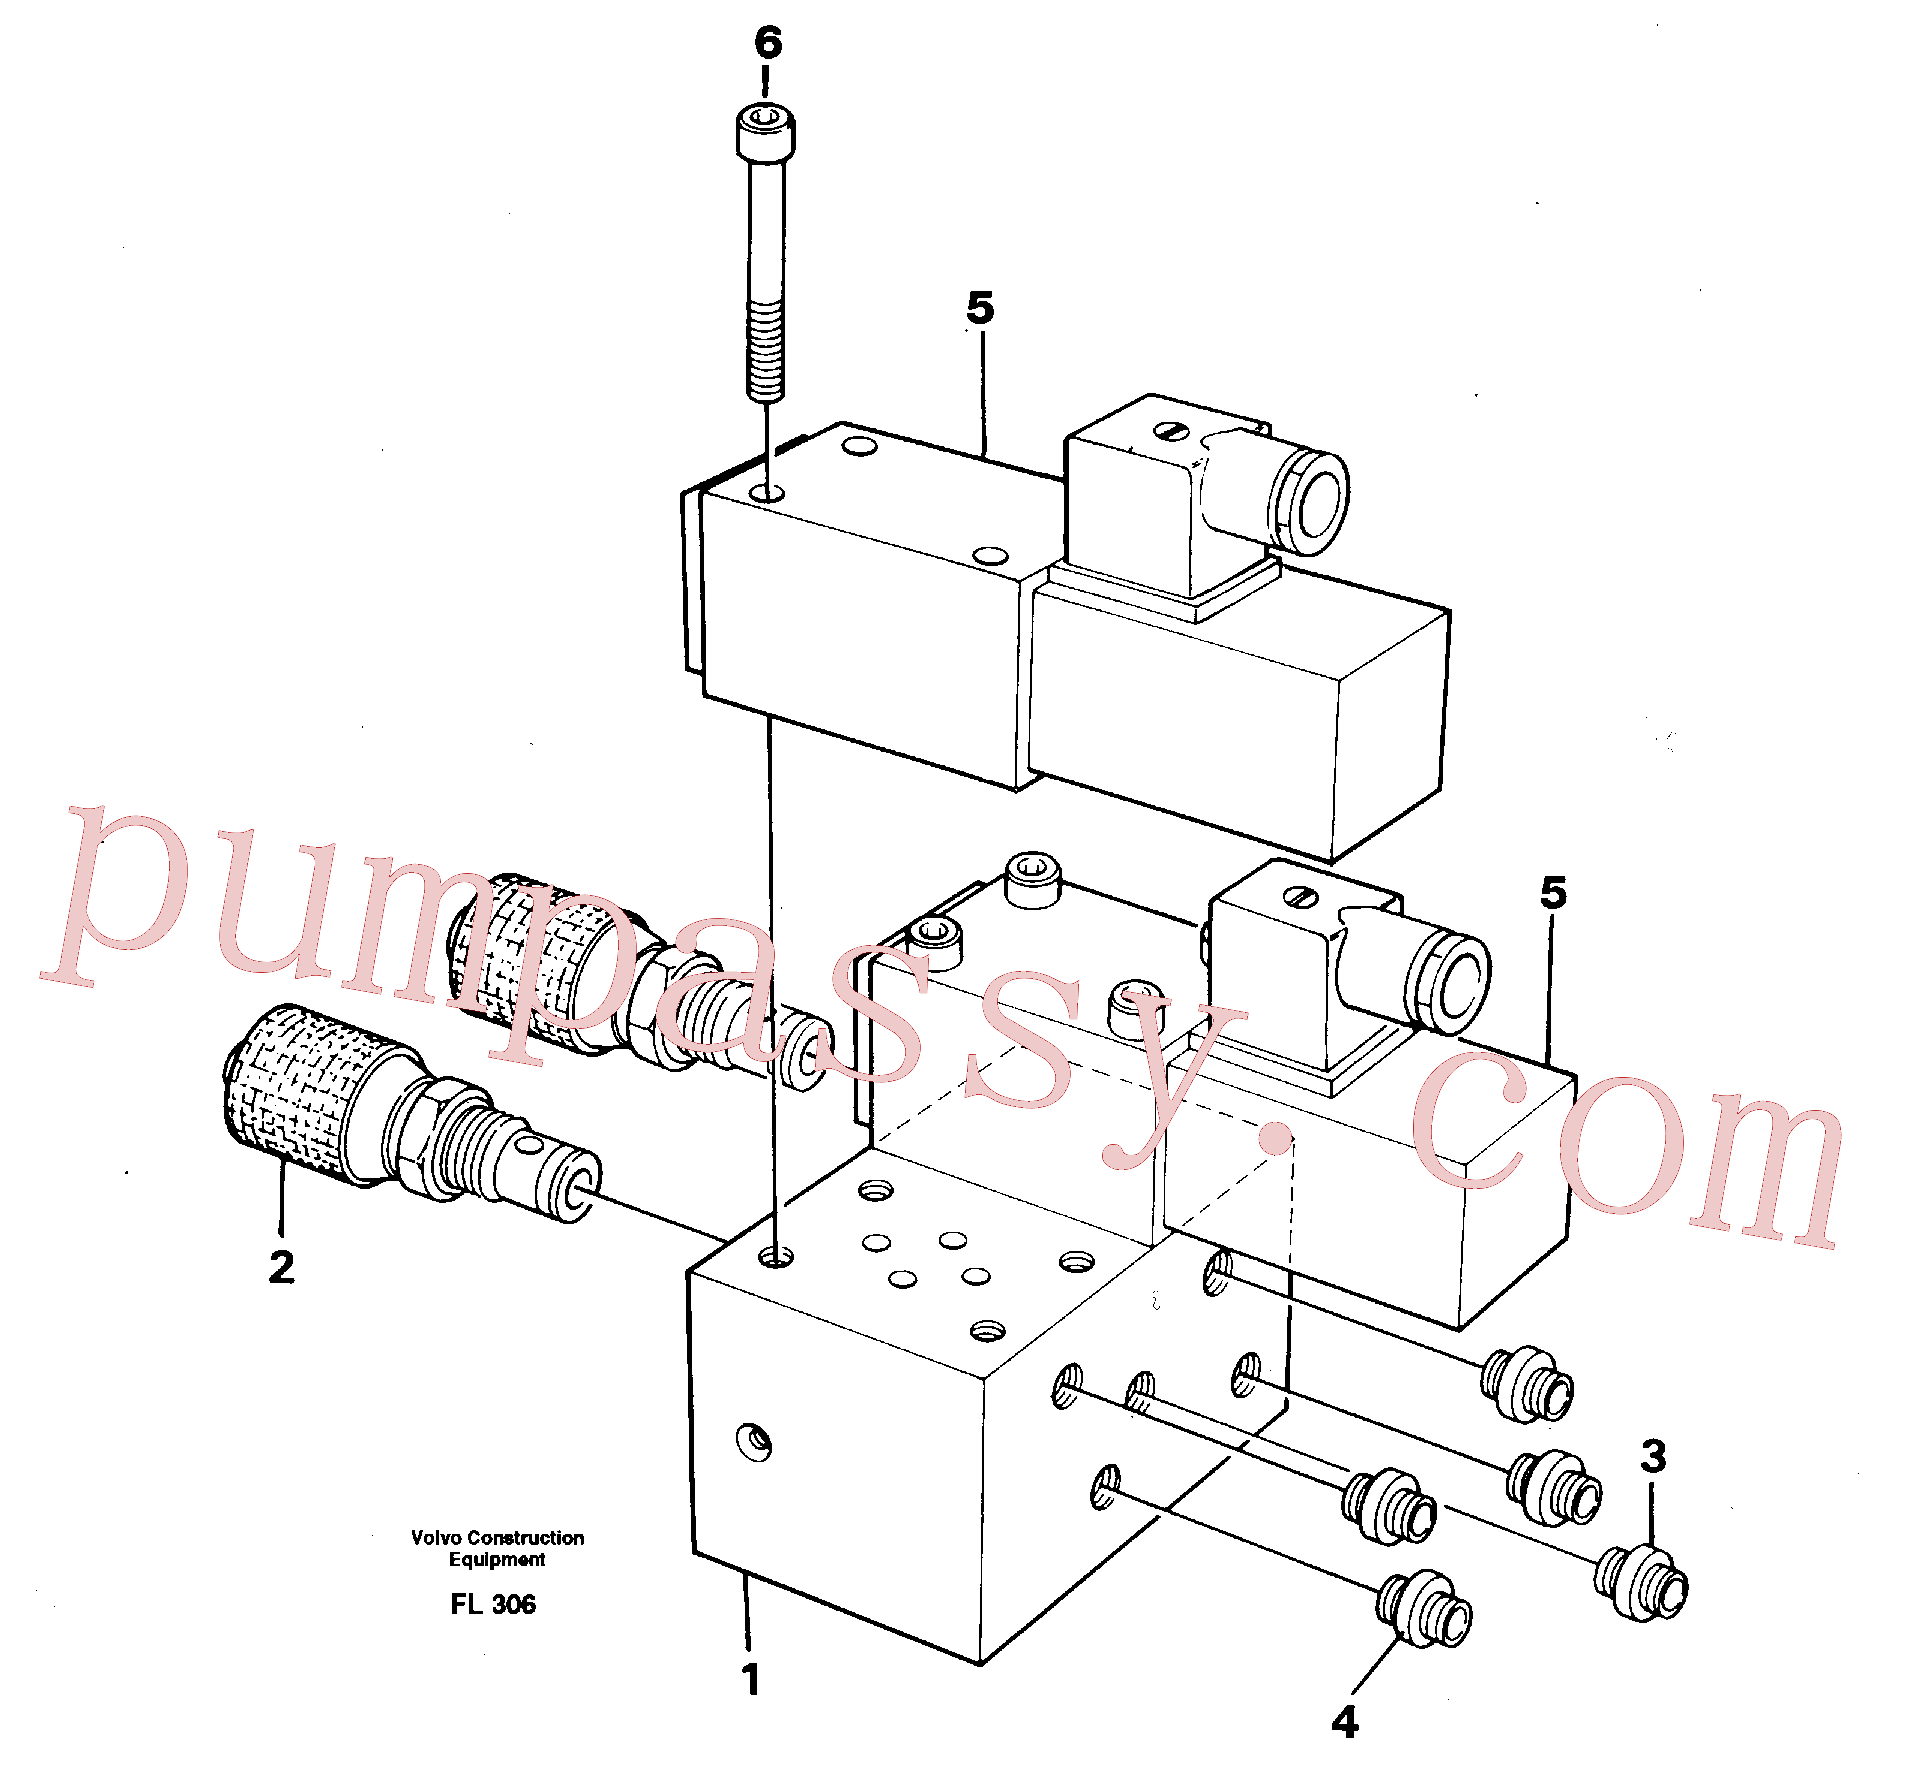 VOE14247352 for Volvo Control block for end position damp(FL306 assembly)